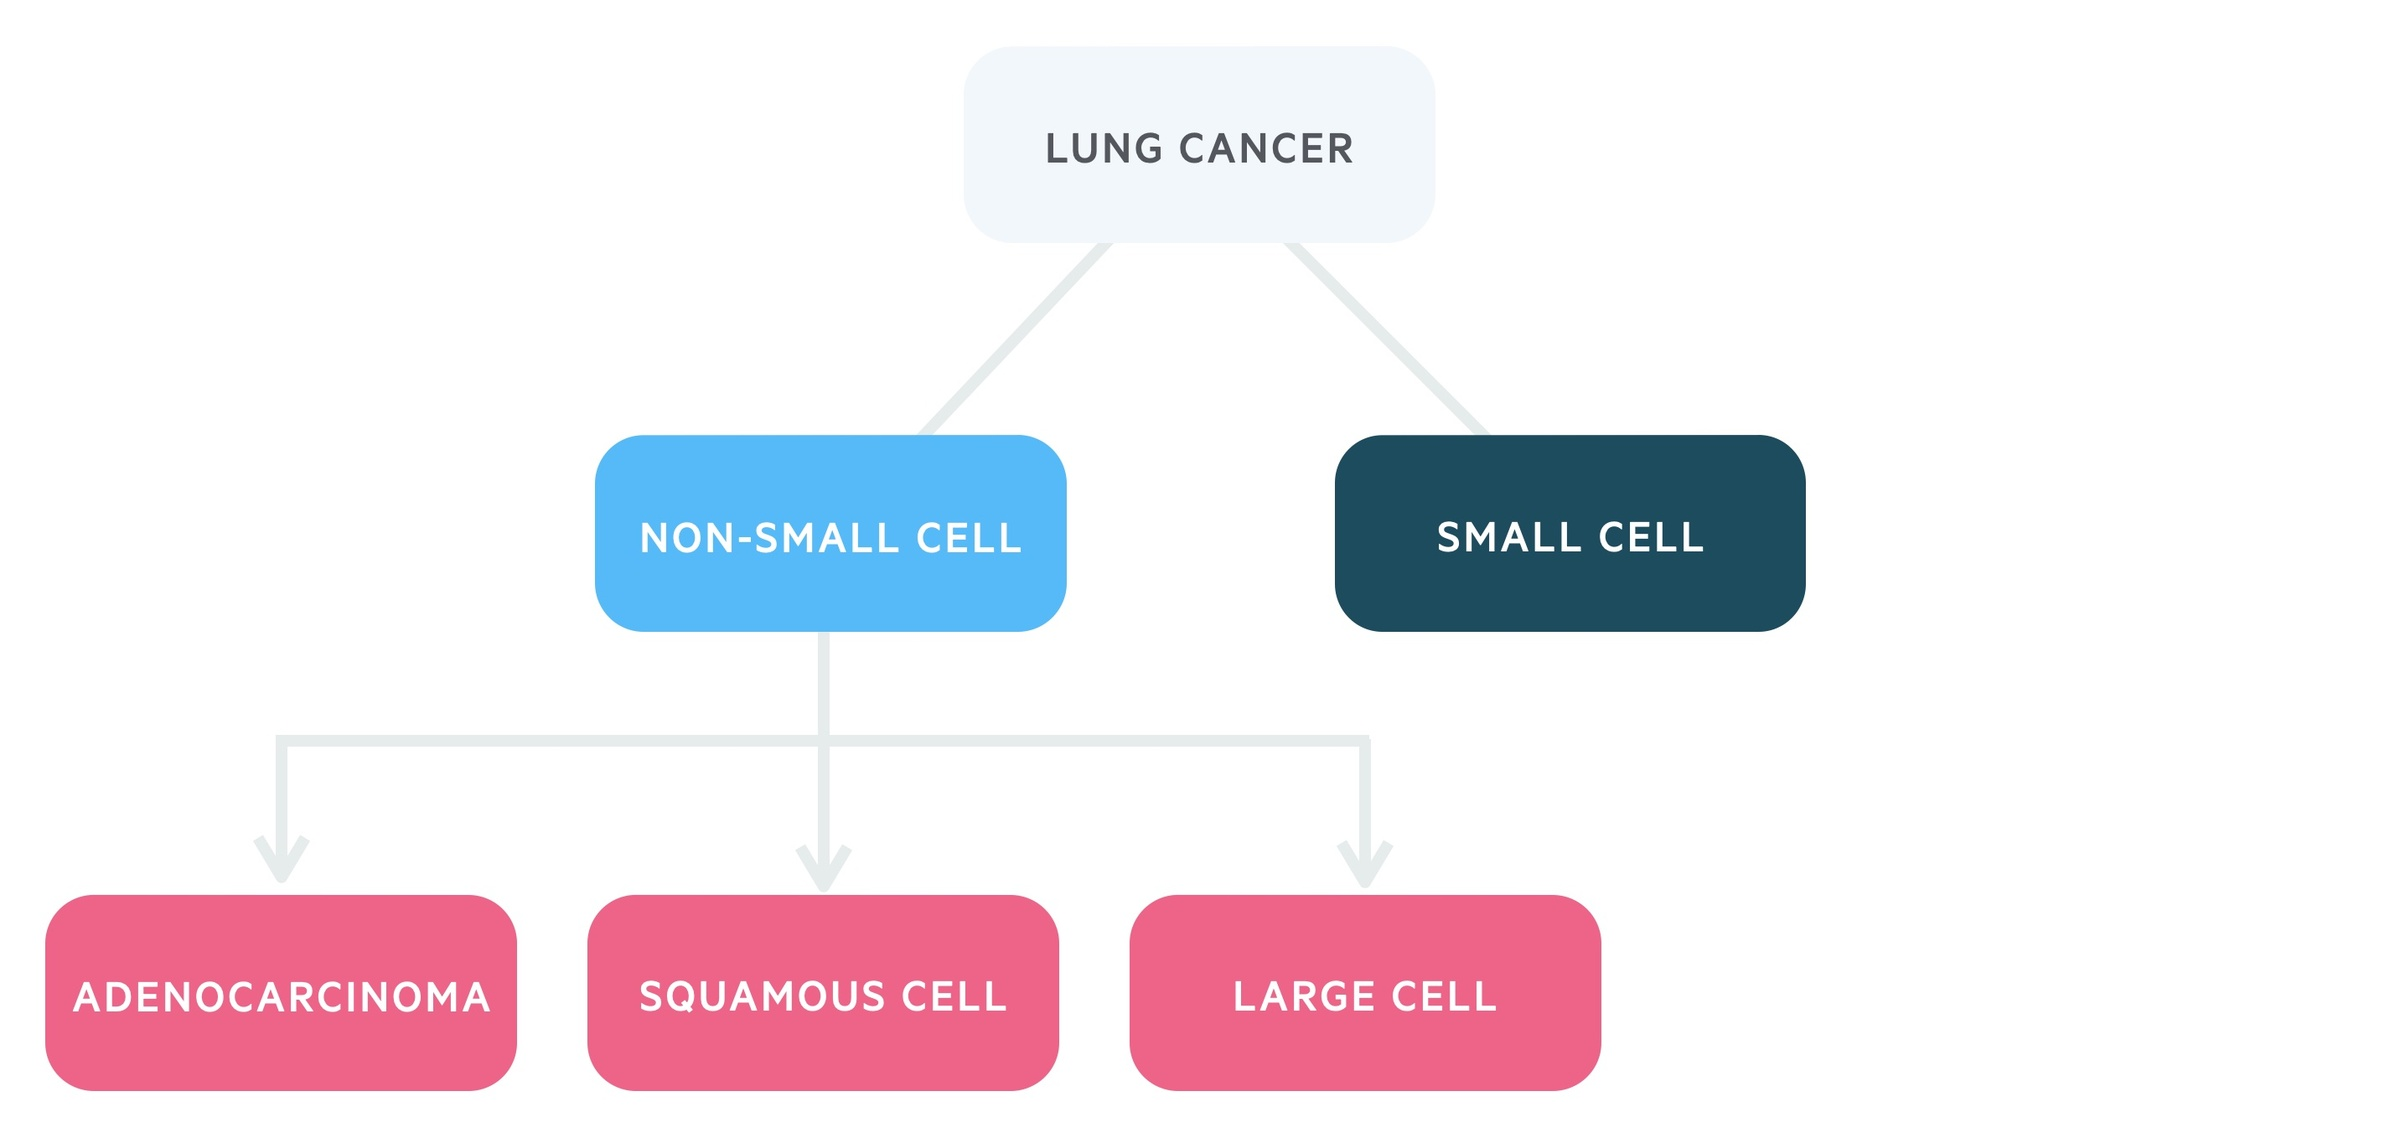 Types of lung cancer (small cell vs non small cell)